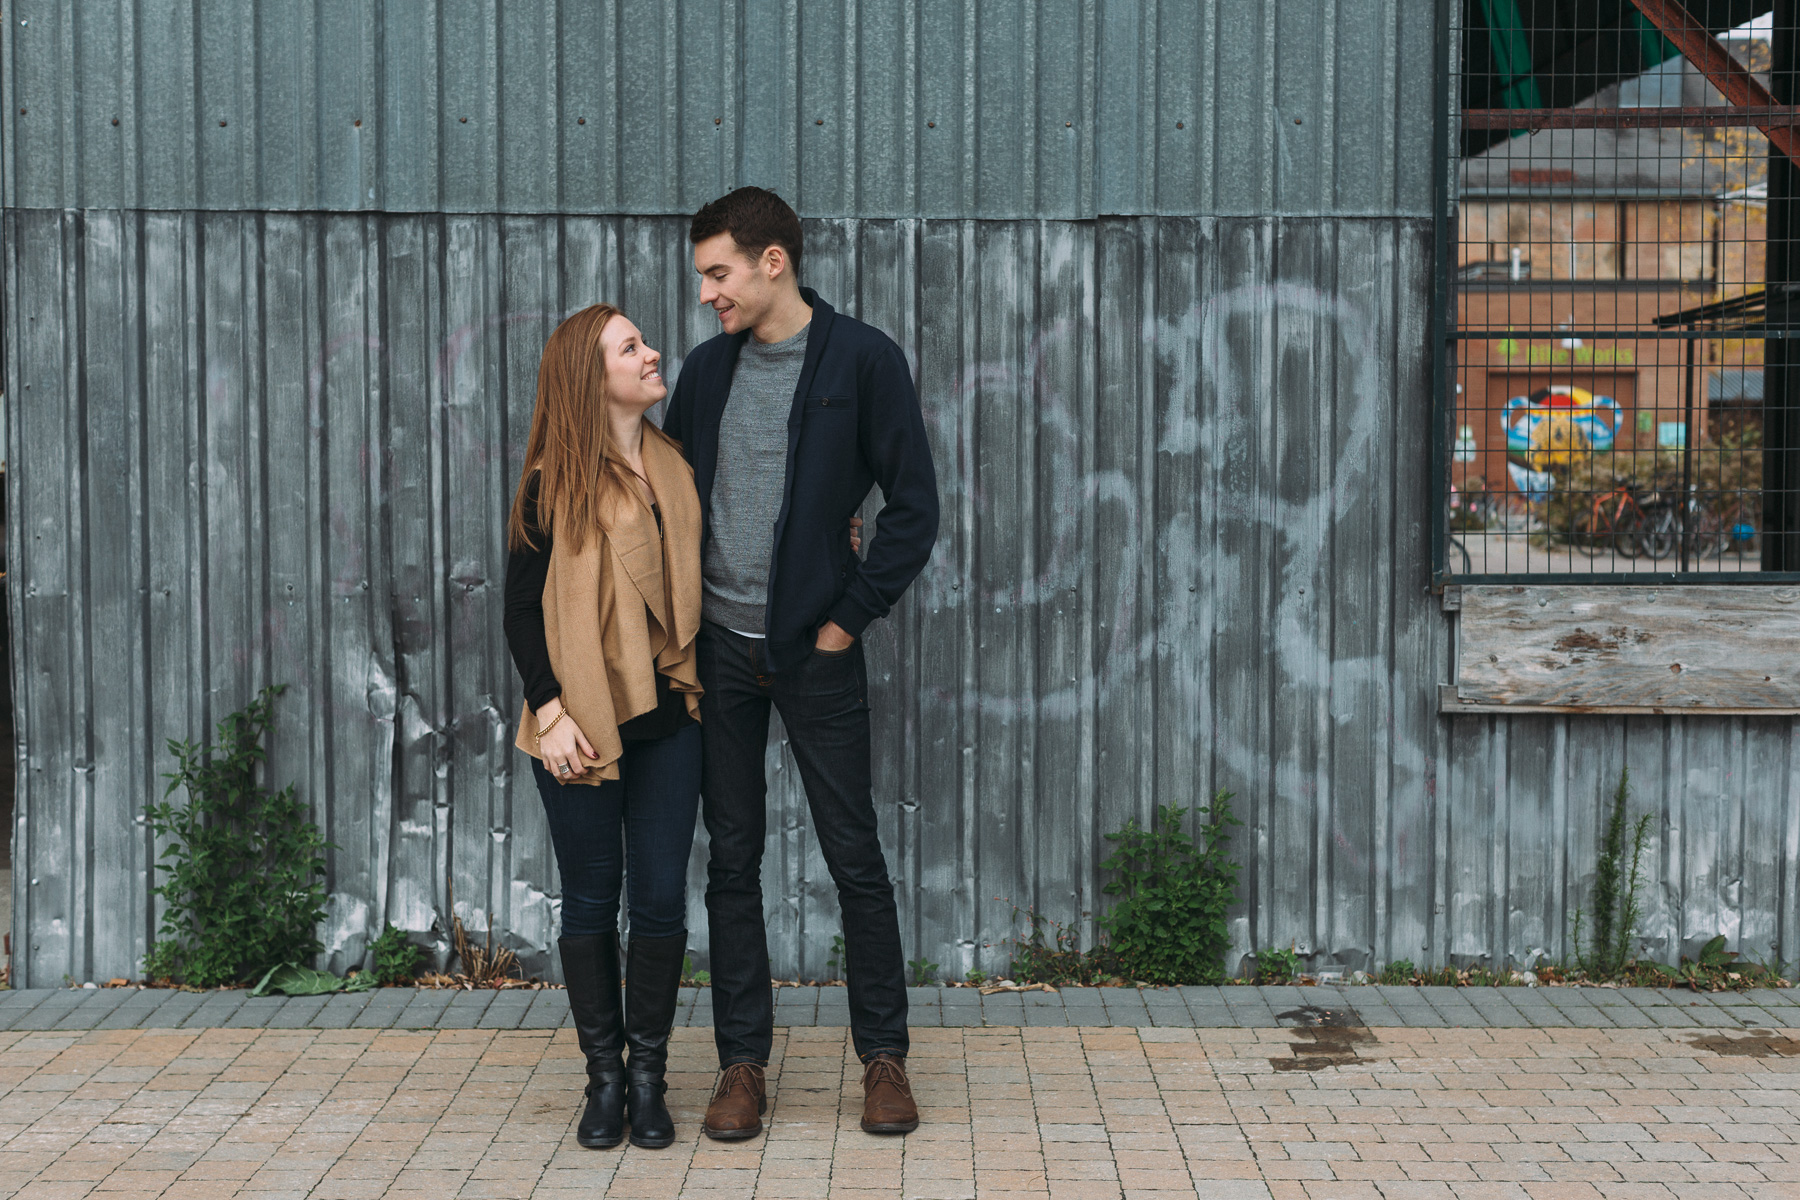 Evergreen-Brick-works-Toronto-engagement-photos-by-Sam-Wong-of_Artanis-Collective-Brooke-&-Adam_02.jpg